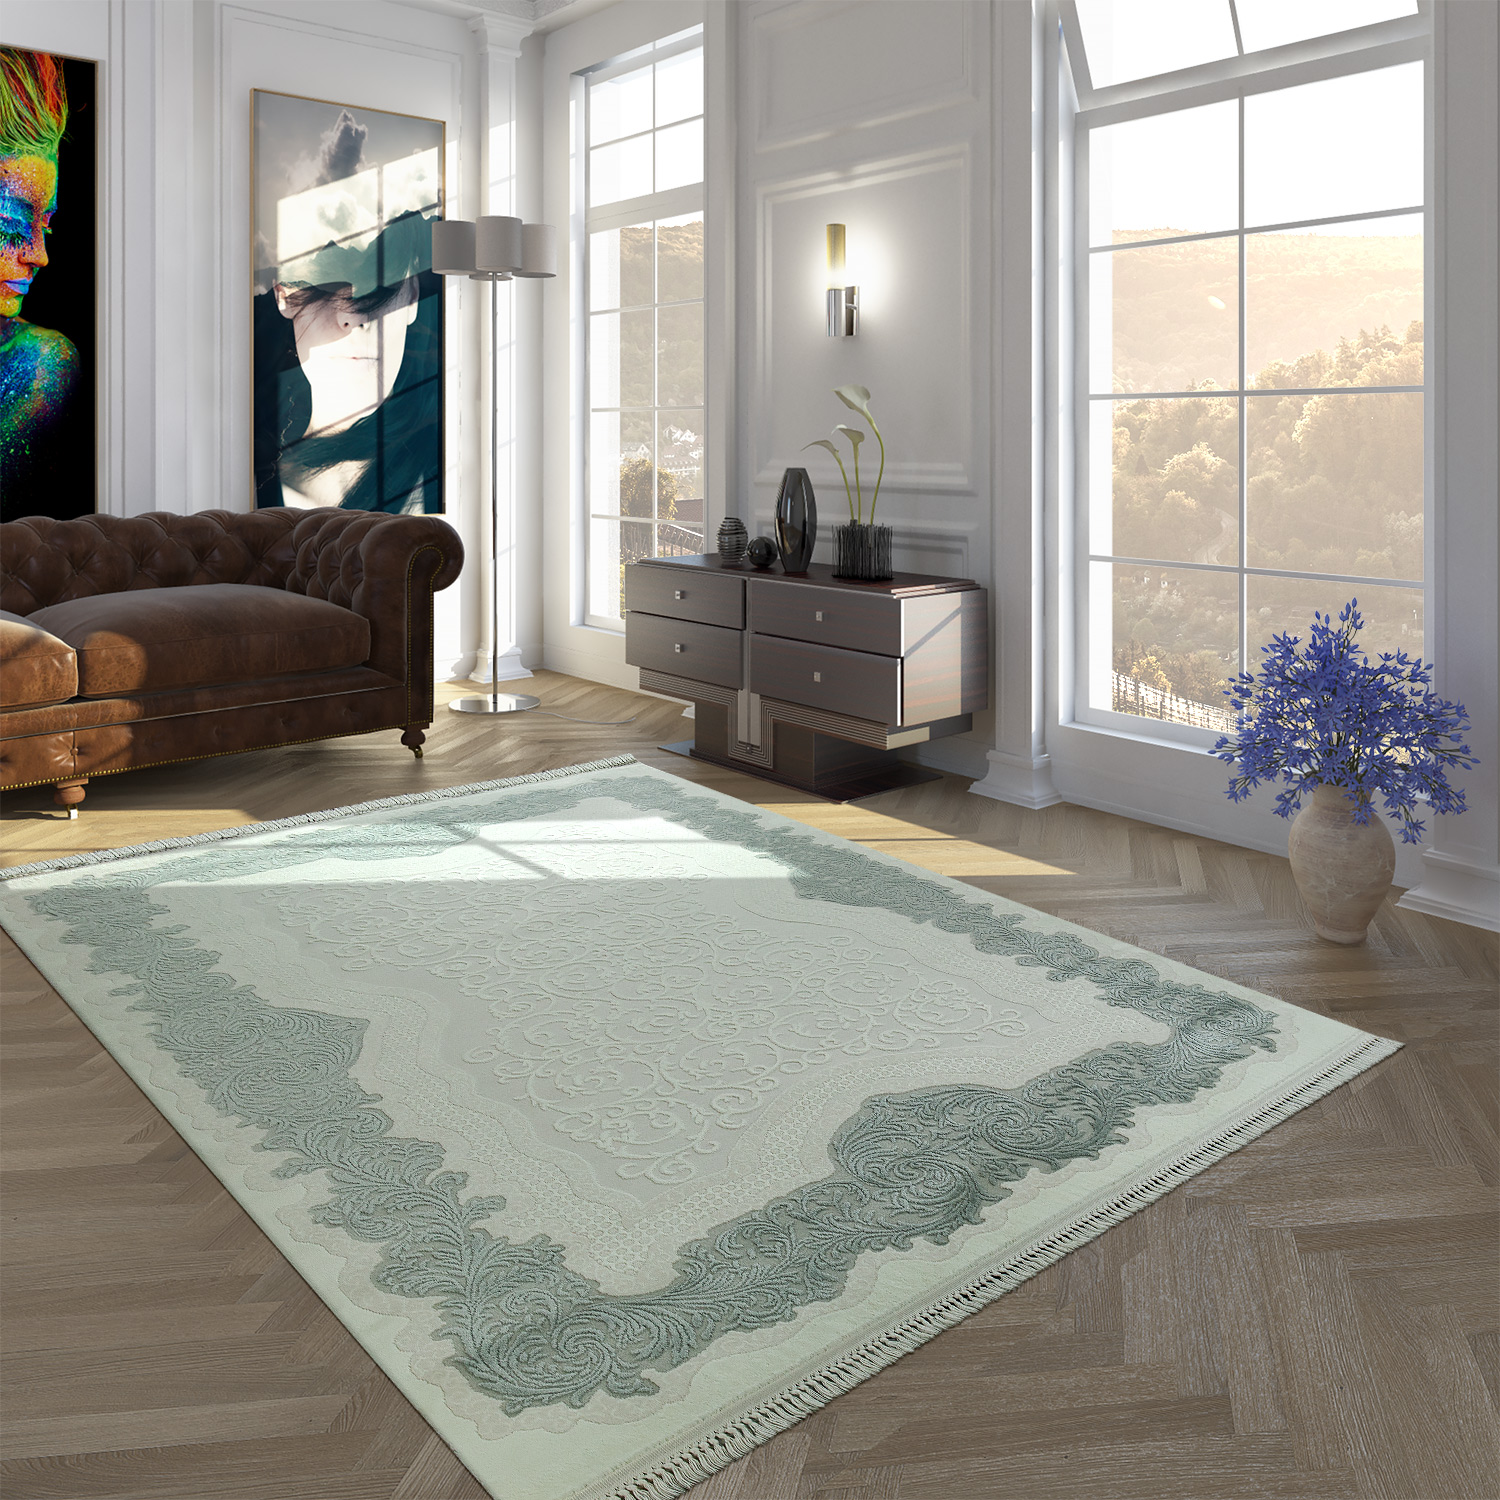 Polyacrylic Rug Short Pile High-Quality Classic Border Fringes Floral Cream Blue